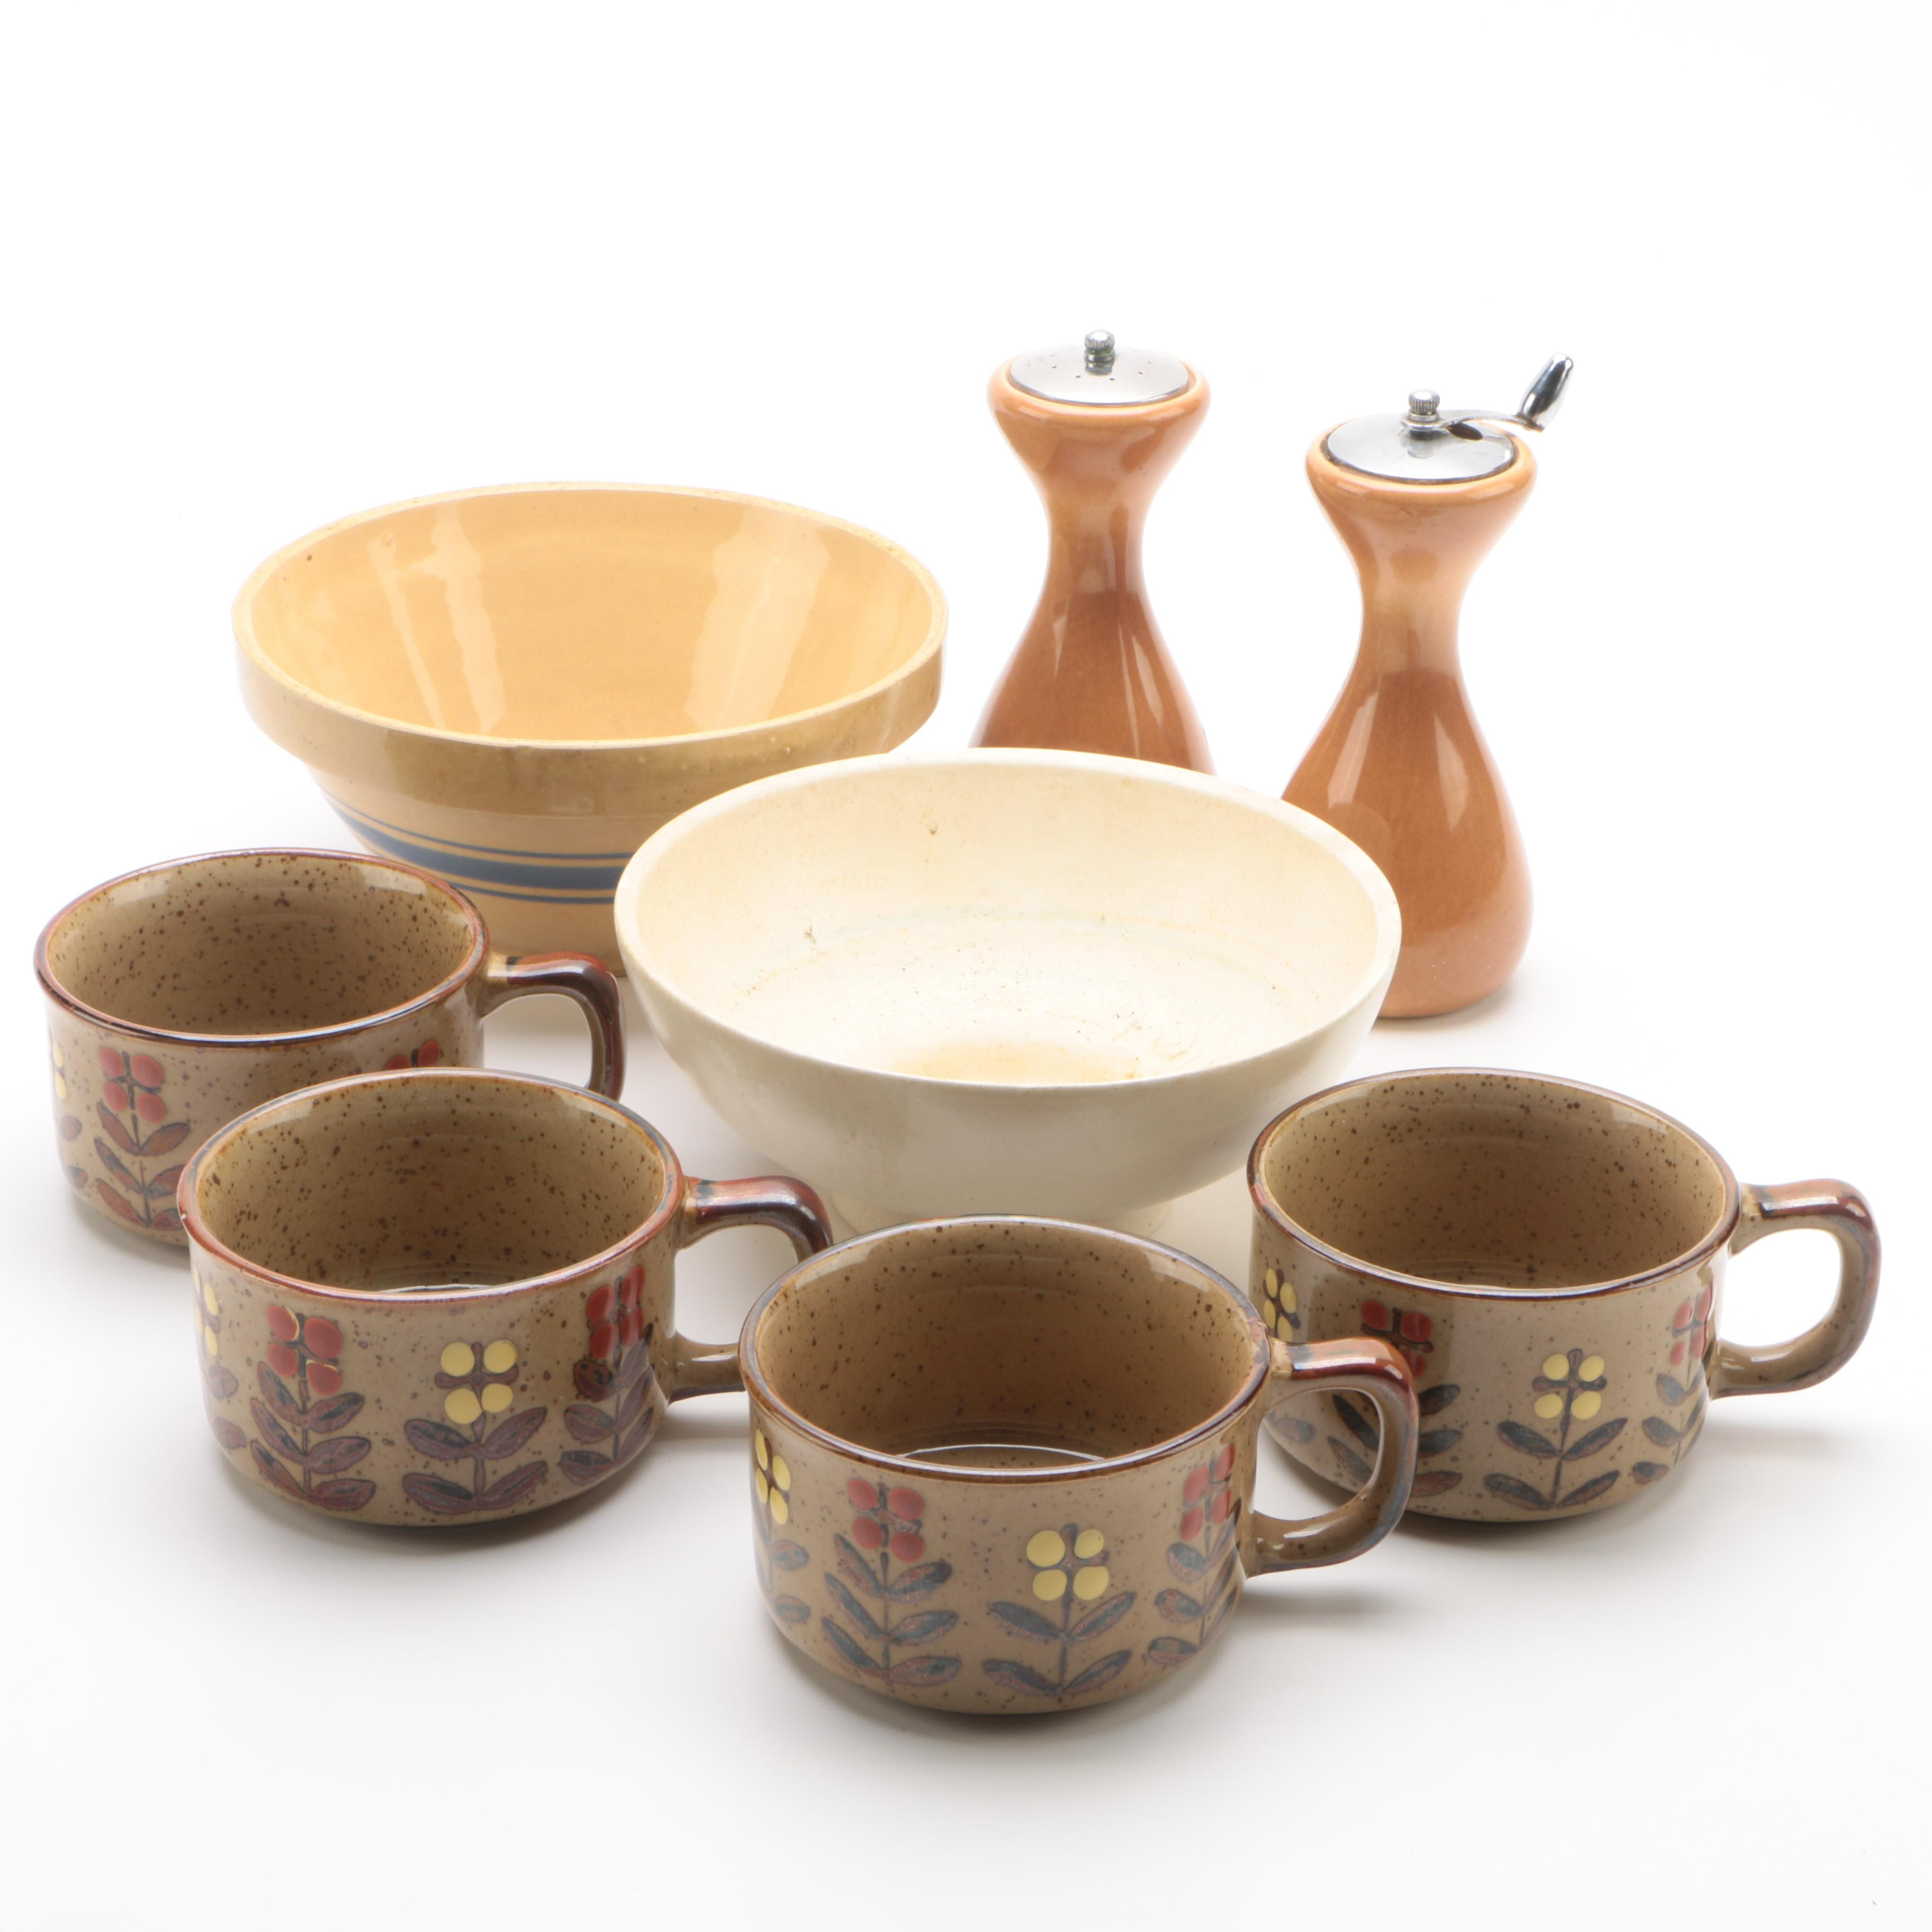 Vintage Haeger Pottery Bowl with Floral Soup Mugs and Pepper Mill